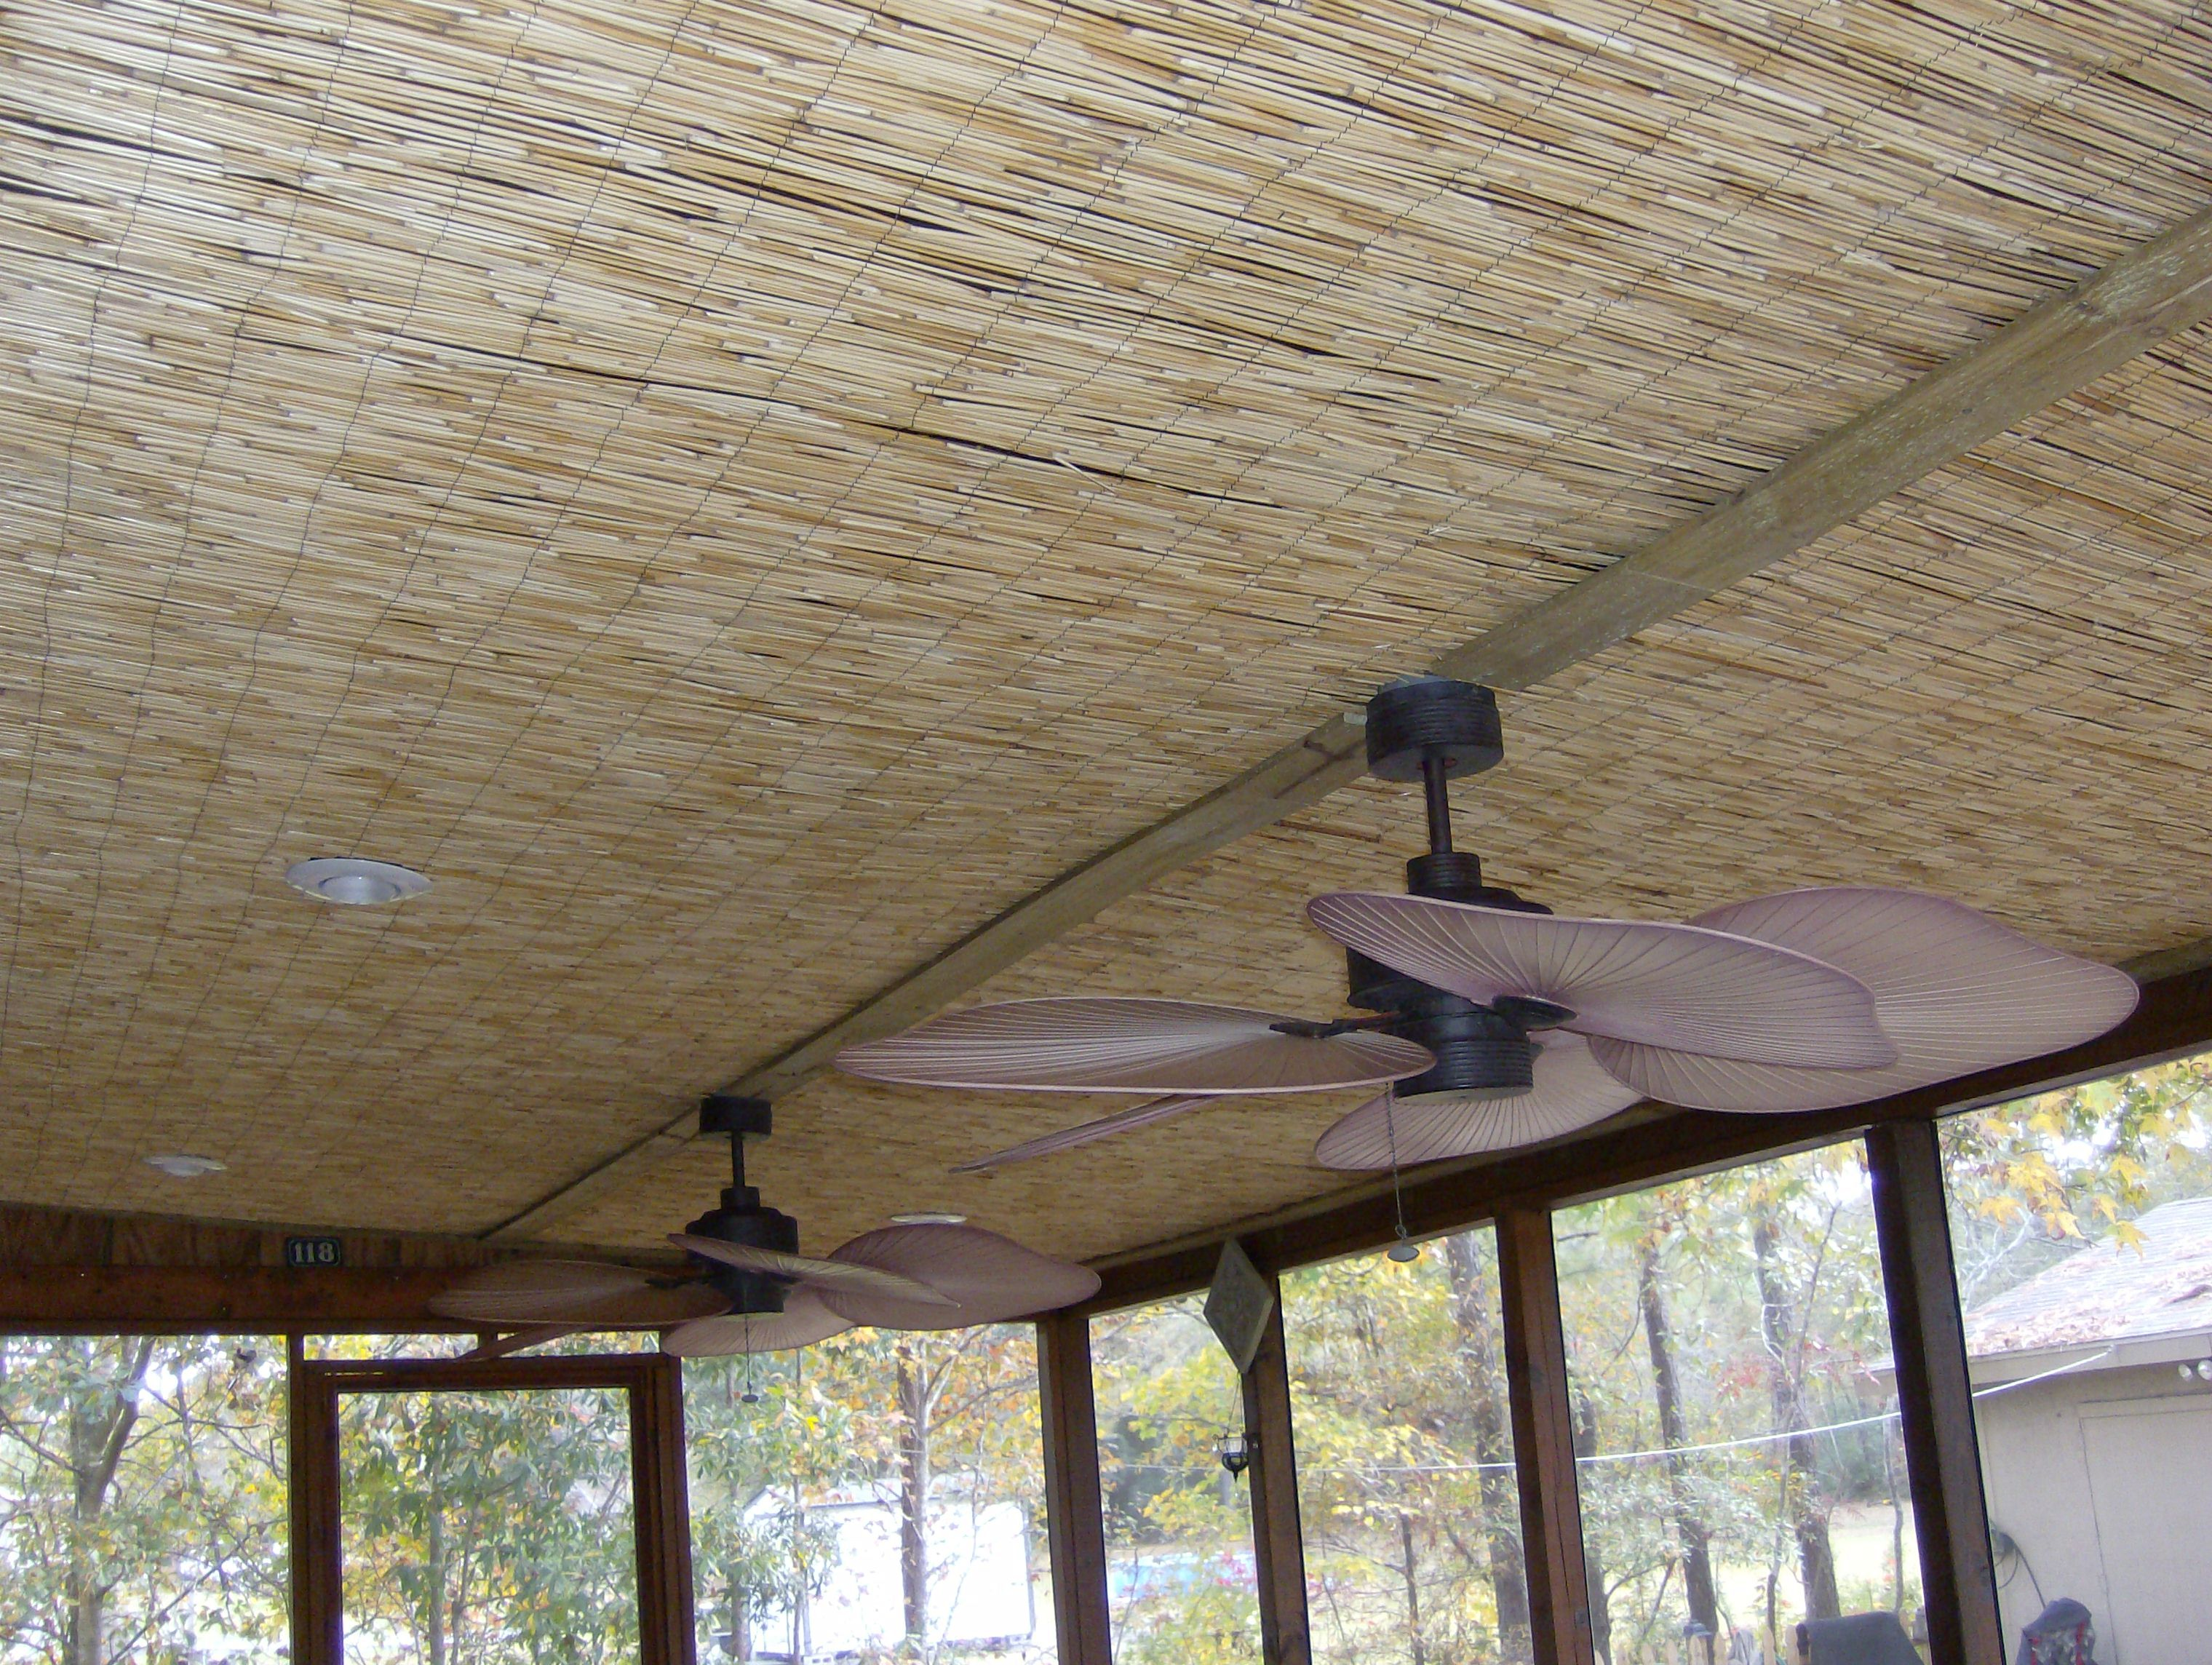 Cheap Ceiling Ideas Looking For Cheap Ideas To Finish A Garage Ceiling For My Future